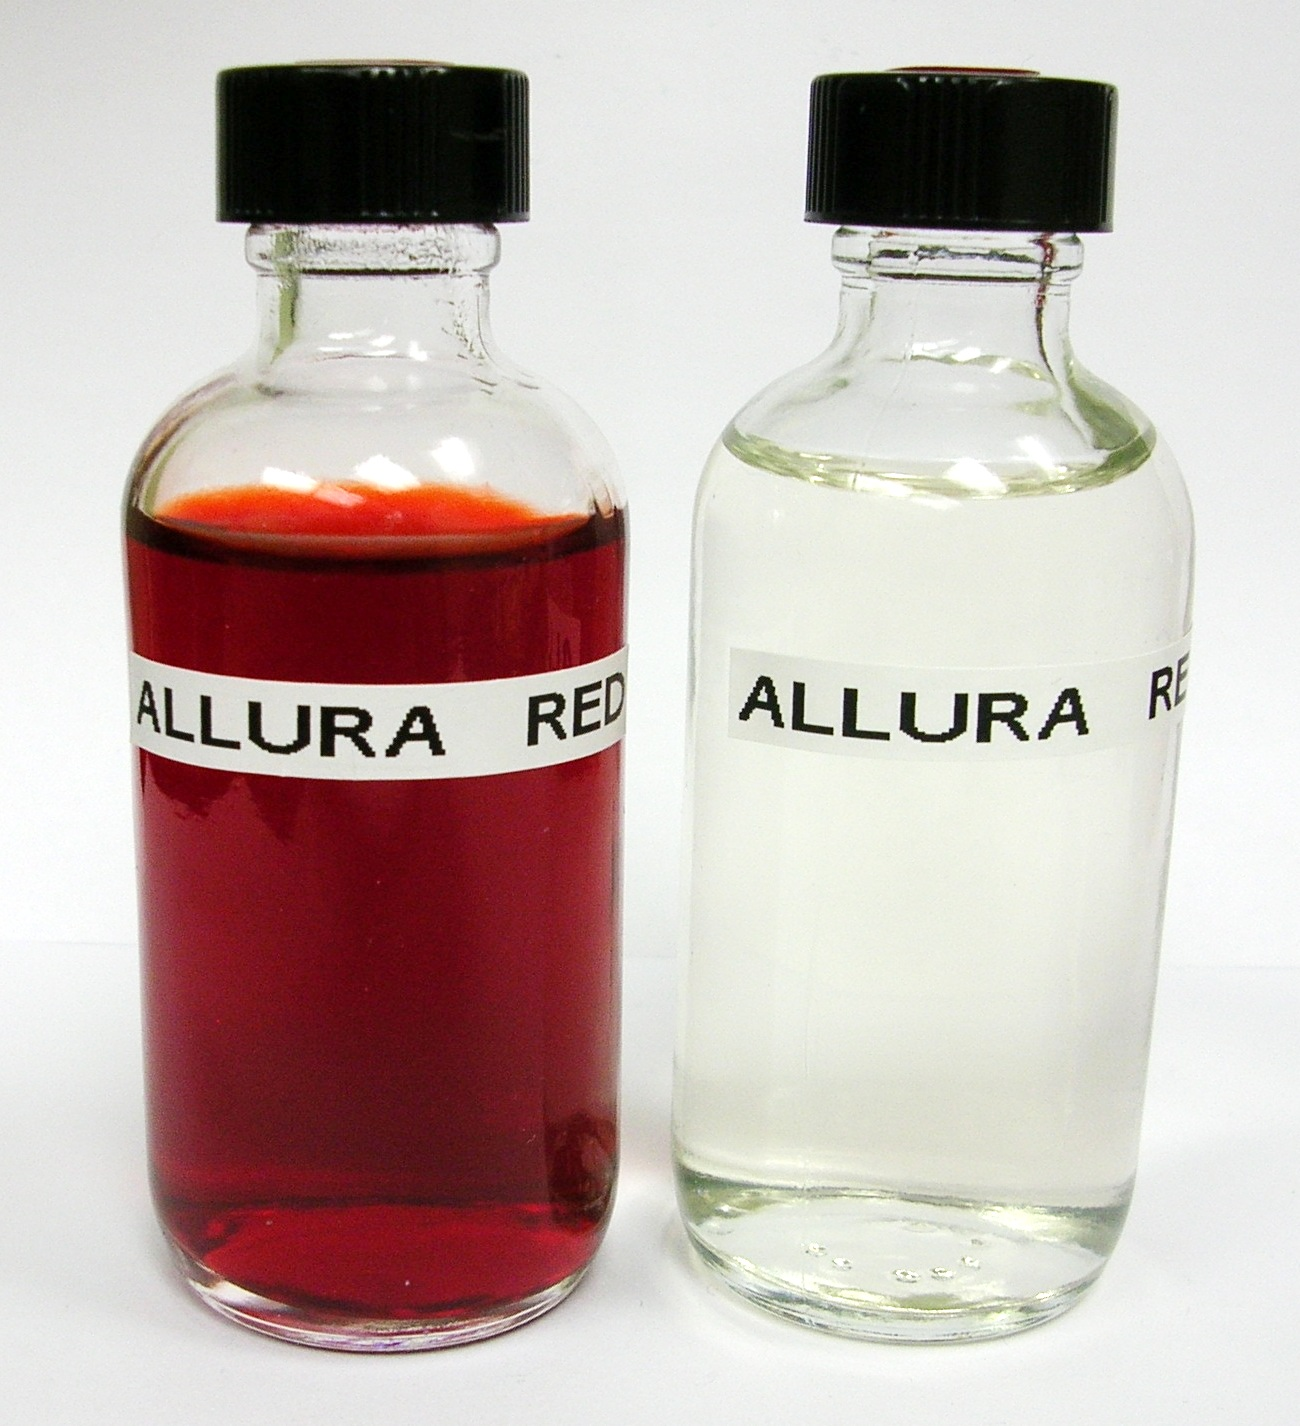 Allura Red 40 azo dye wastewater decoloration Catalytic Advanced Oxidation Hydrogen Link catalyst